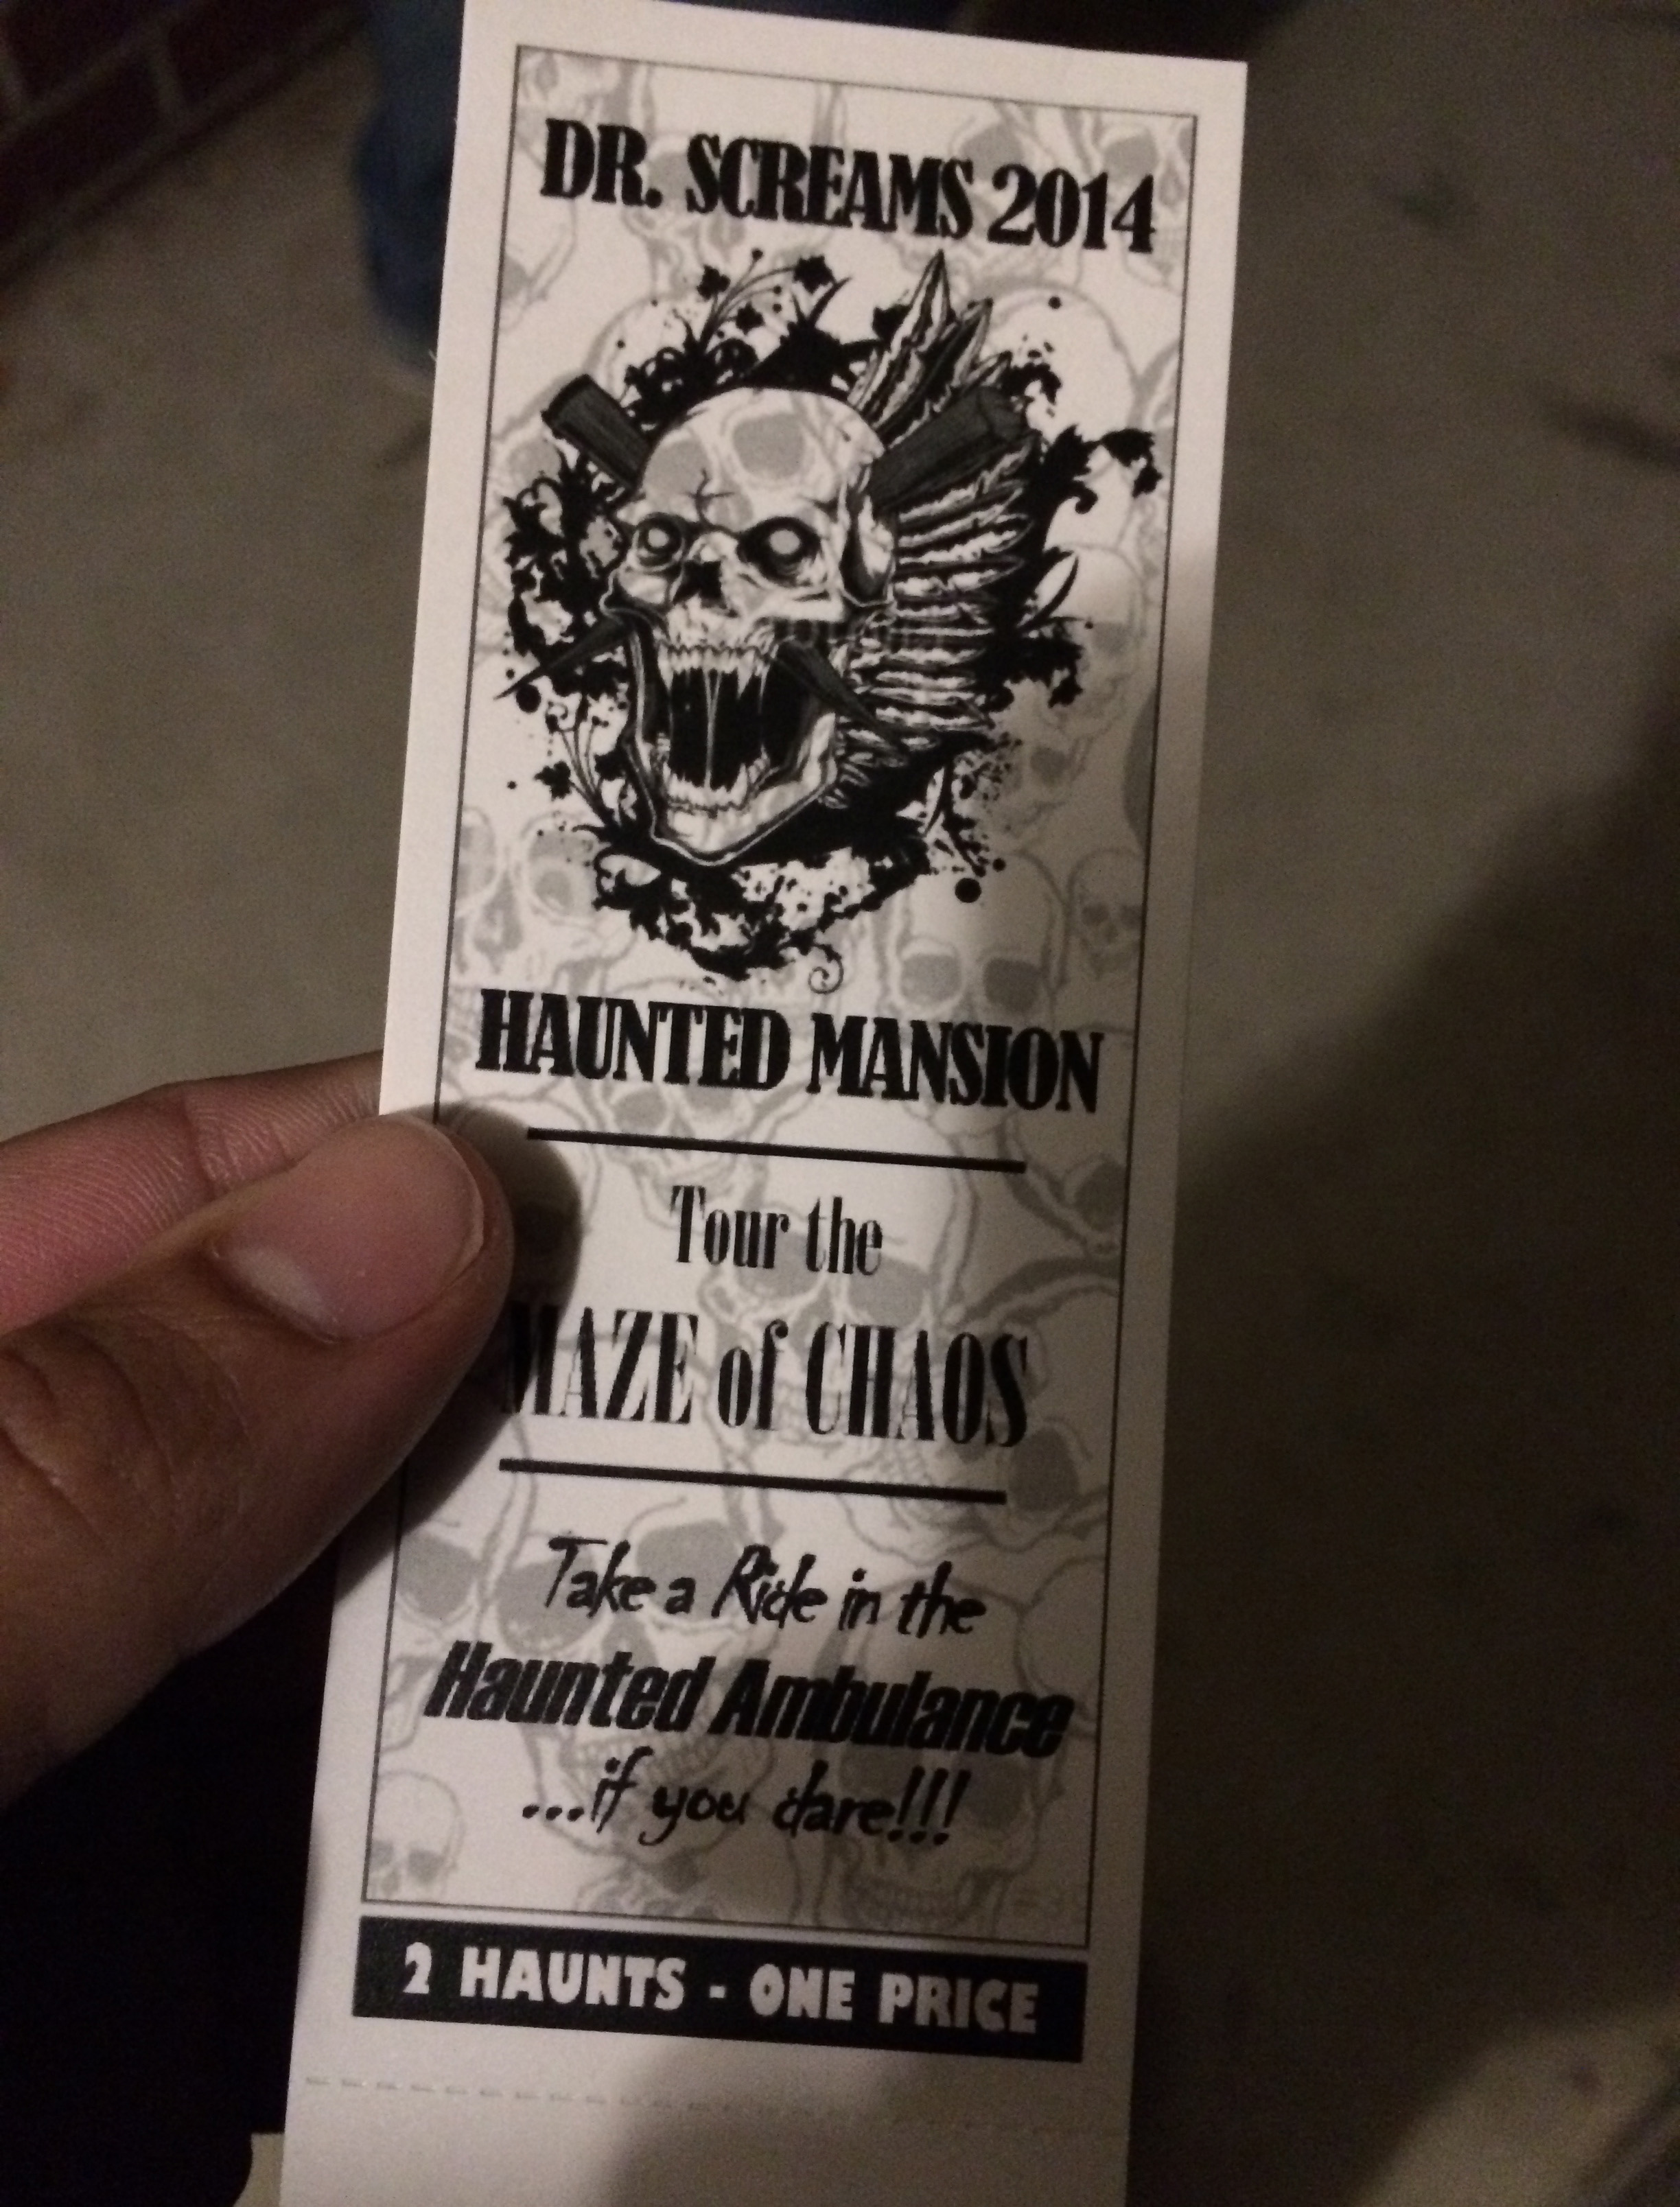 My ticket for Dr. Screams.